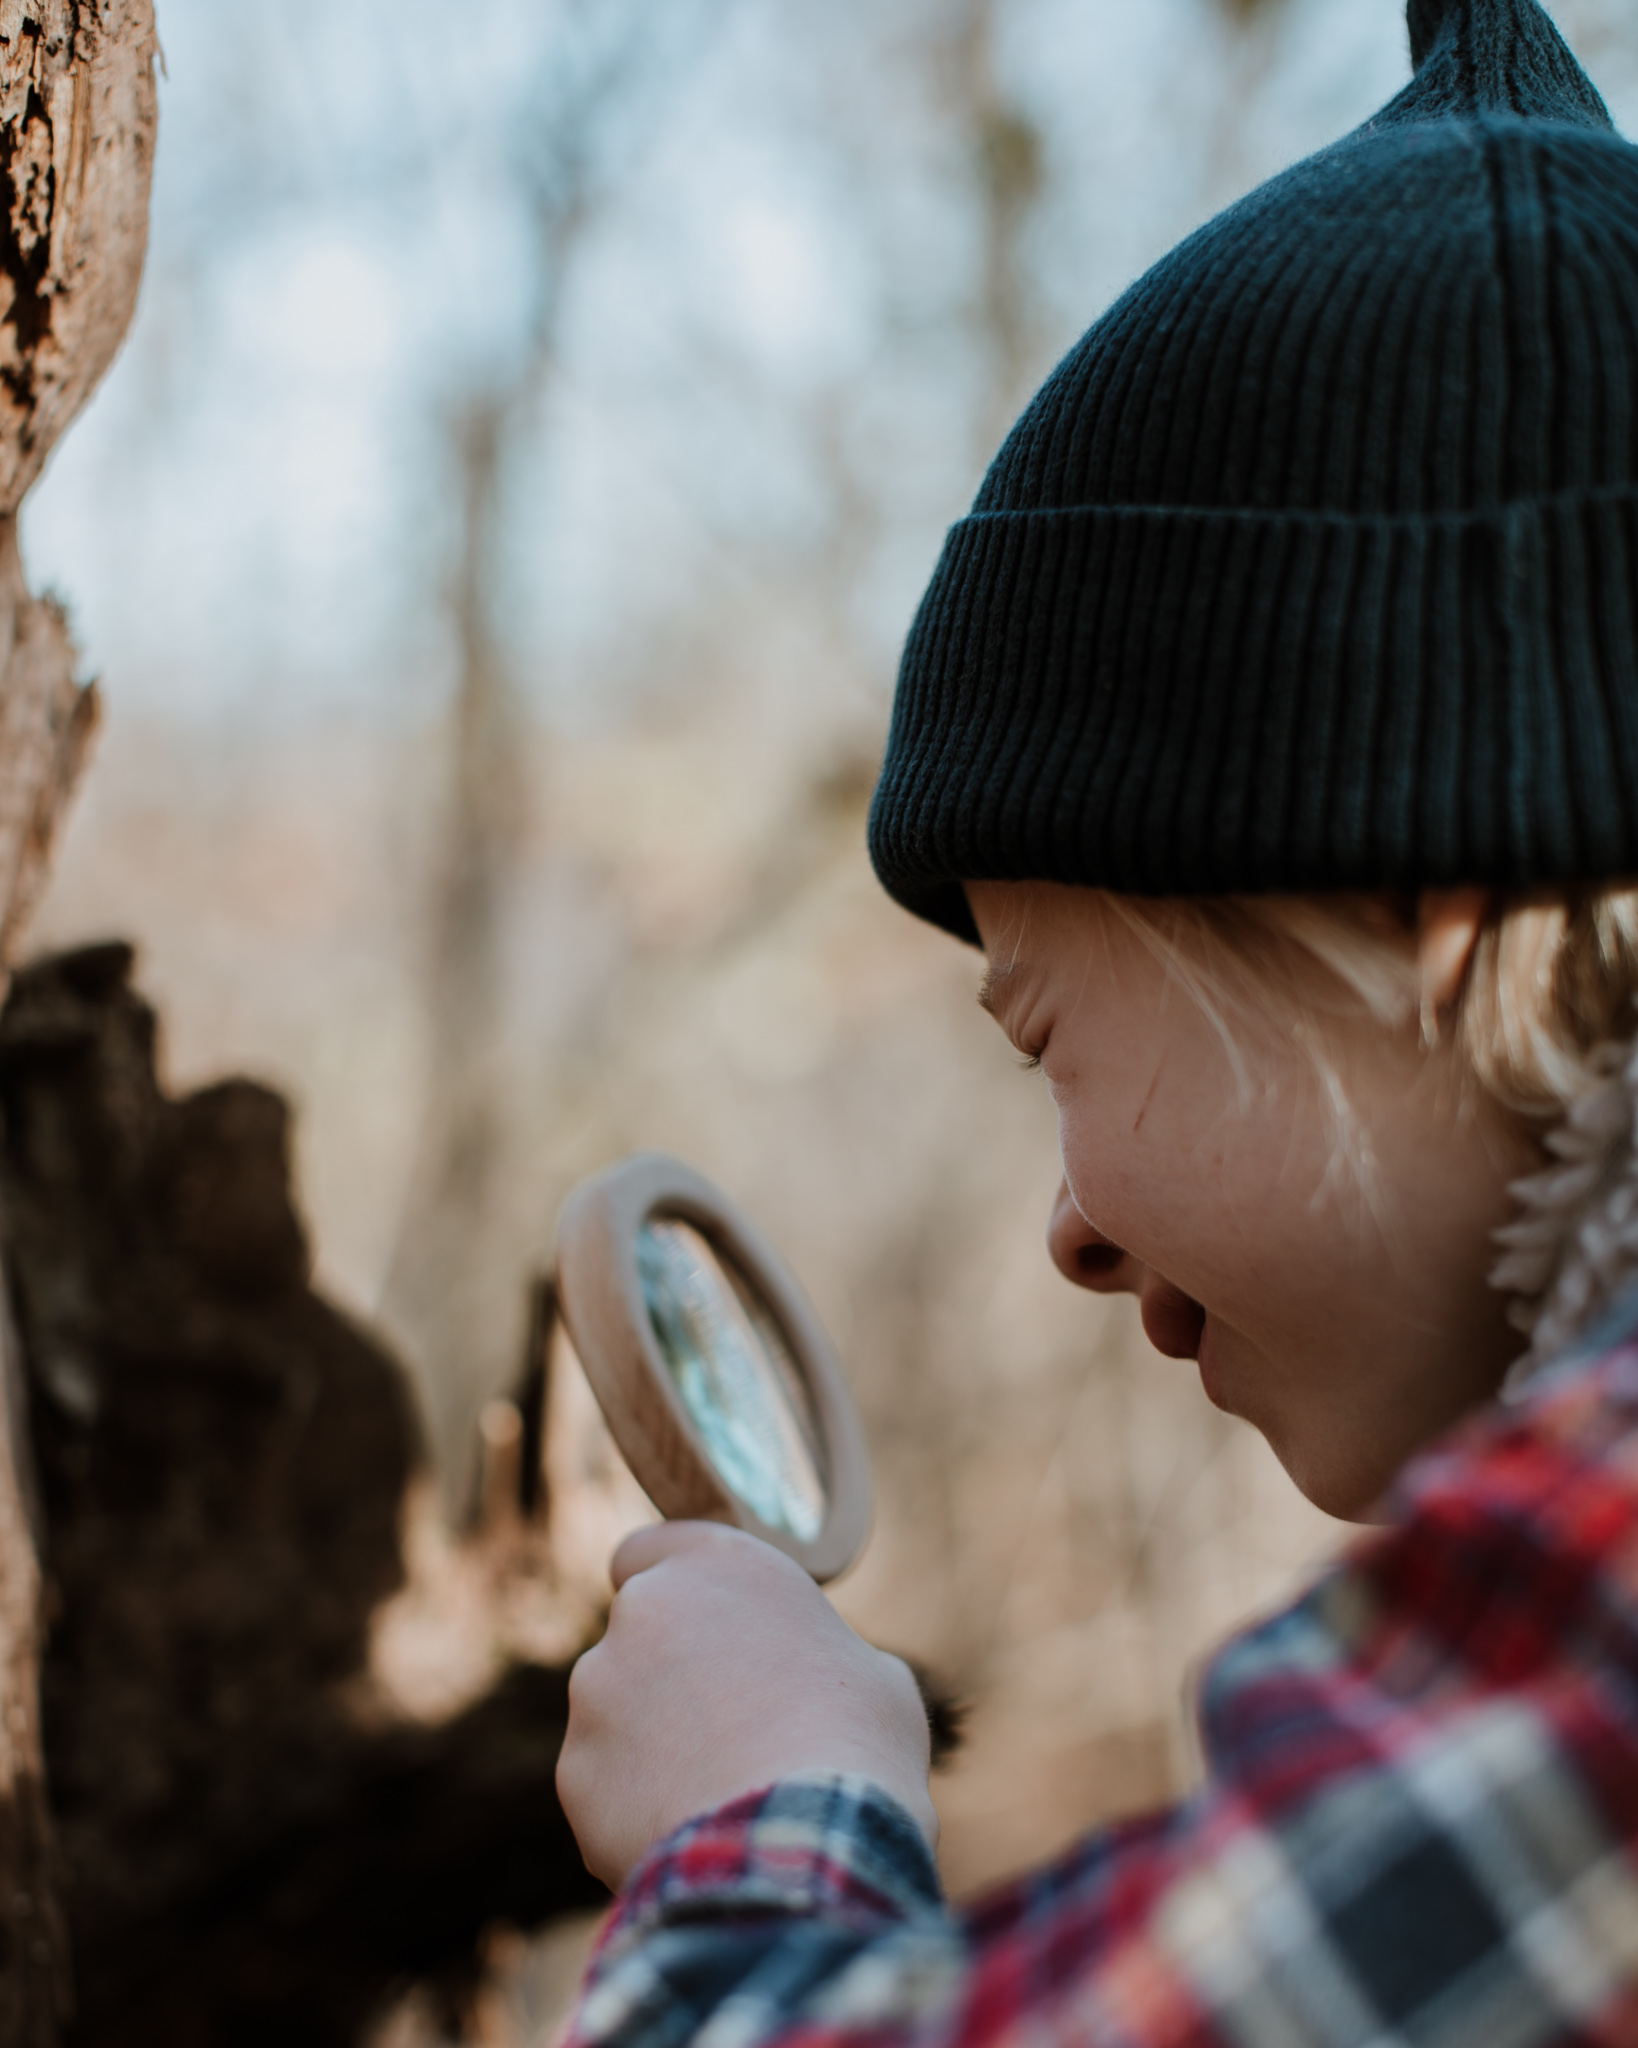 A child looking through a wooden magnifying glass.